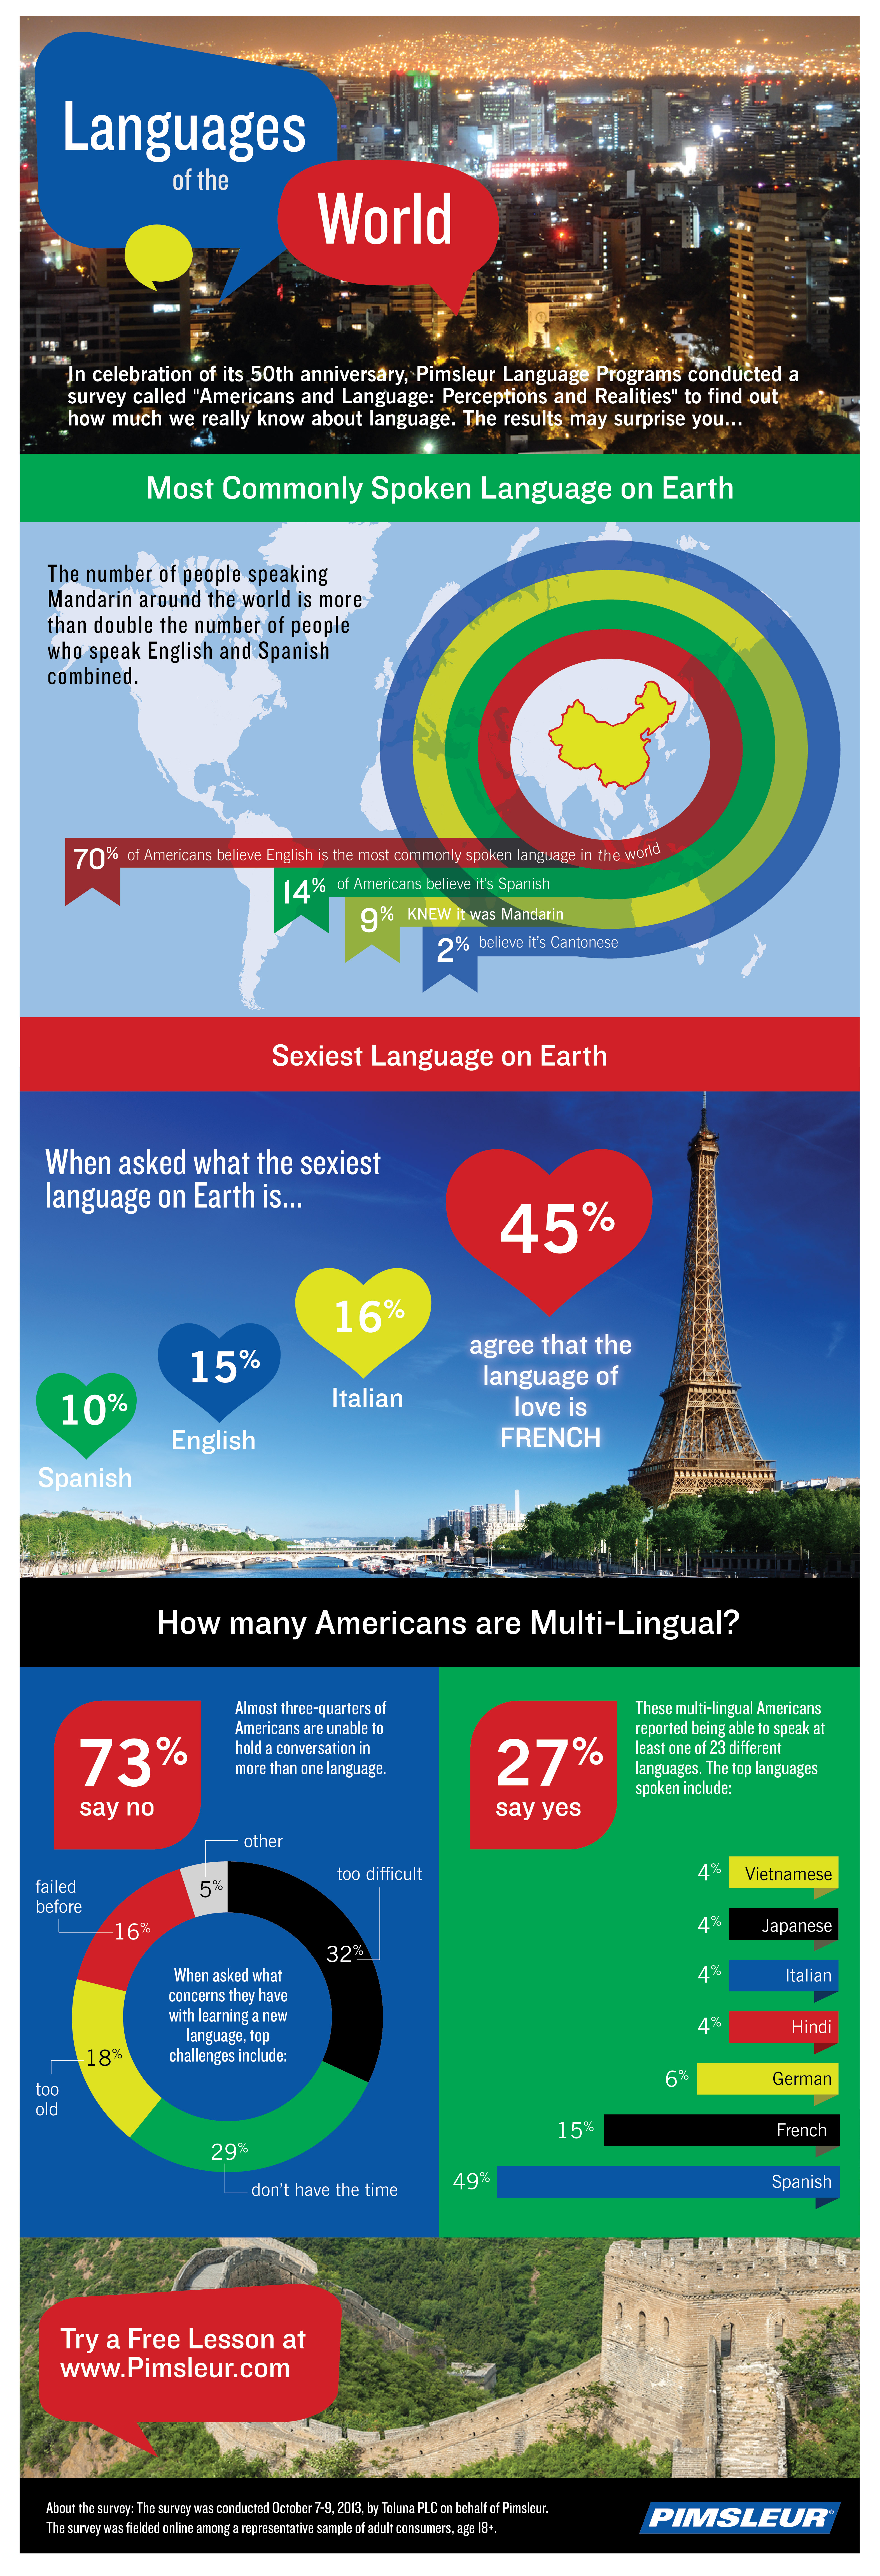 Learn what languages are commonly spoken worldwide and the sexist language